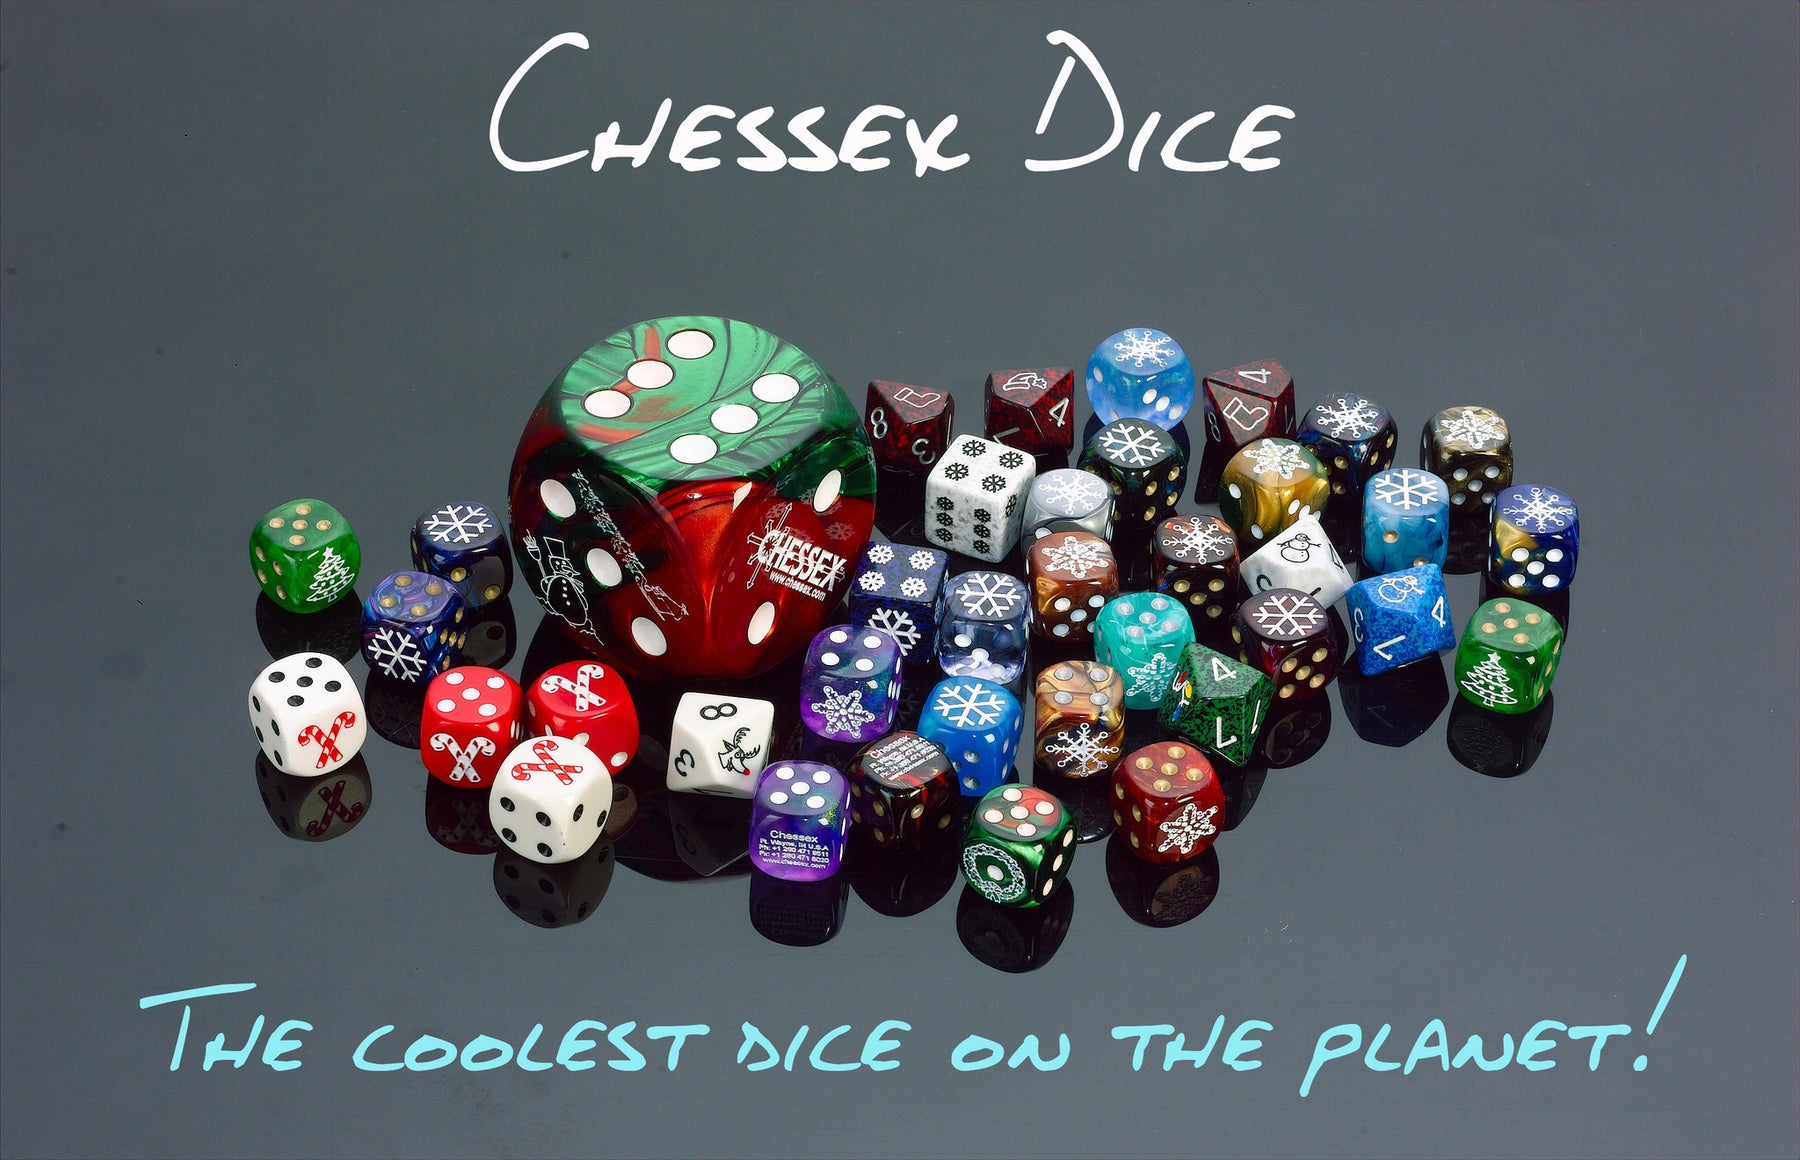 Chessex Dice: The coolest dice on the planet!